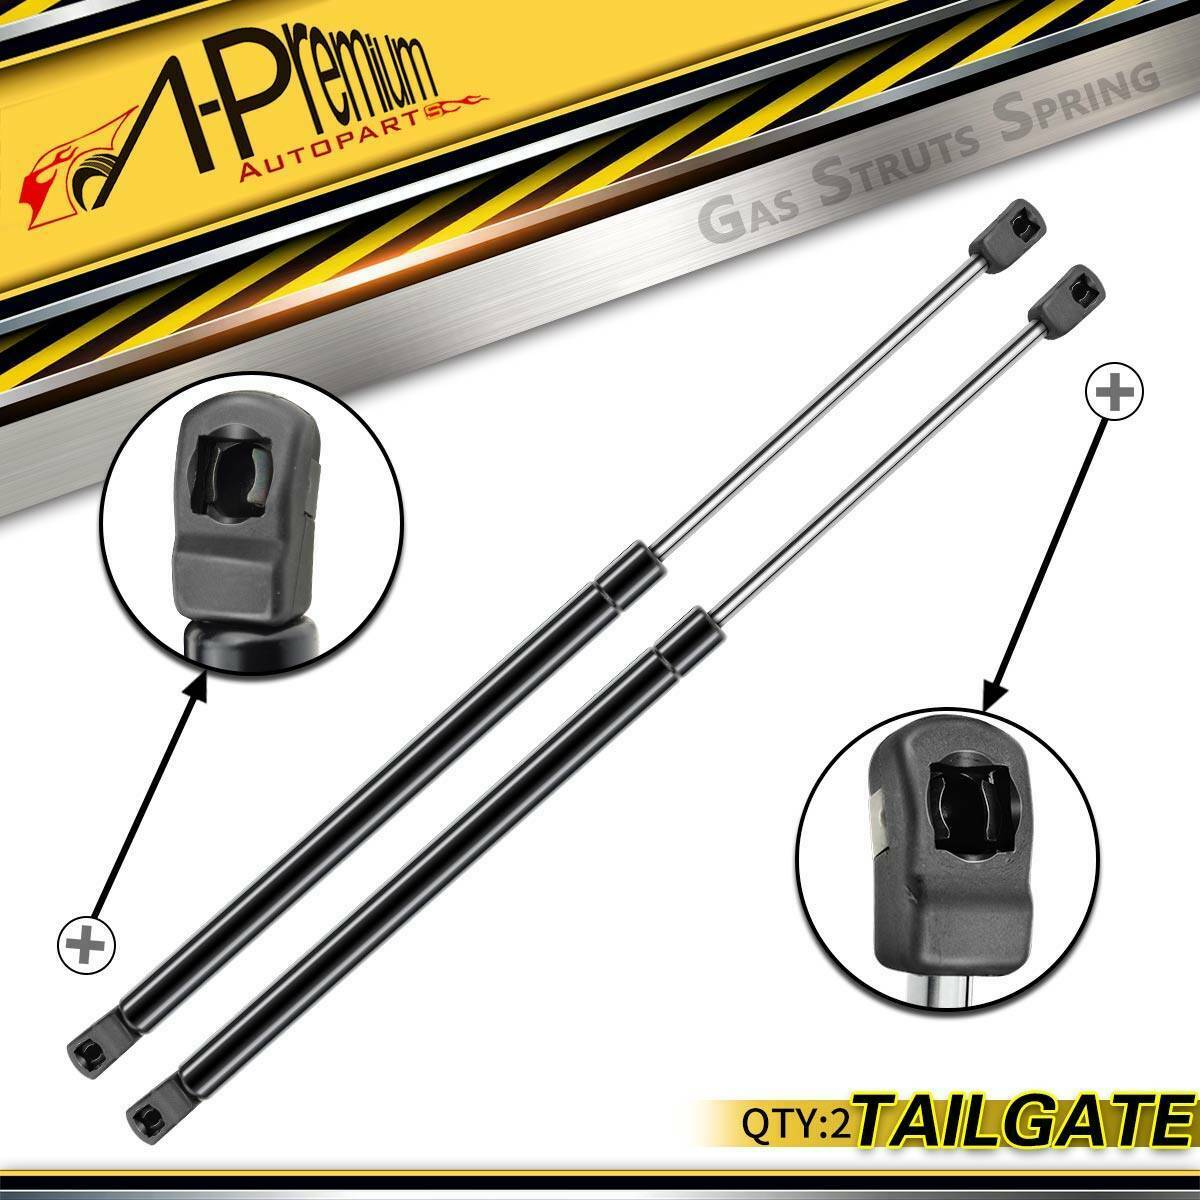 Mazda 6 2002 2008 Estate Tailgate Boot Gas Strut: A-Premium Tailgate Boots Gas Struts For Mazda 6 GG Hatchback 2002-2008 New Pair • AUD 19.99